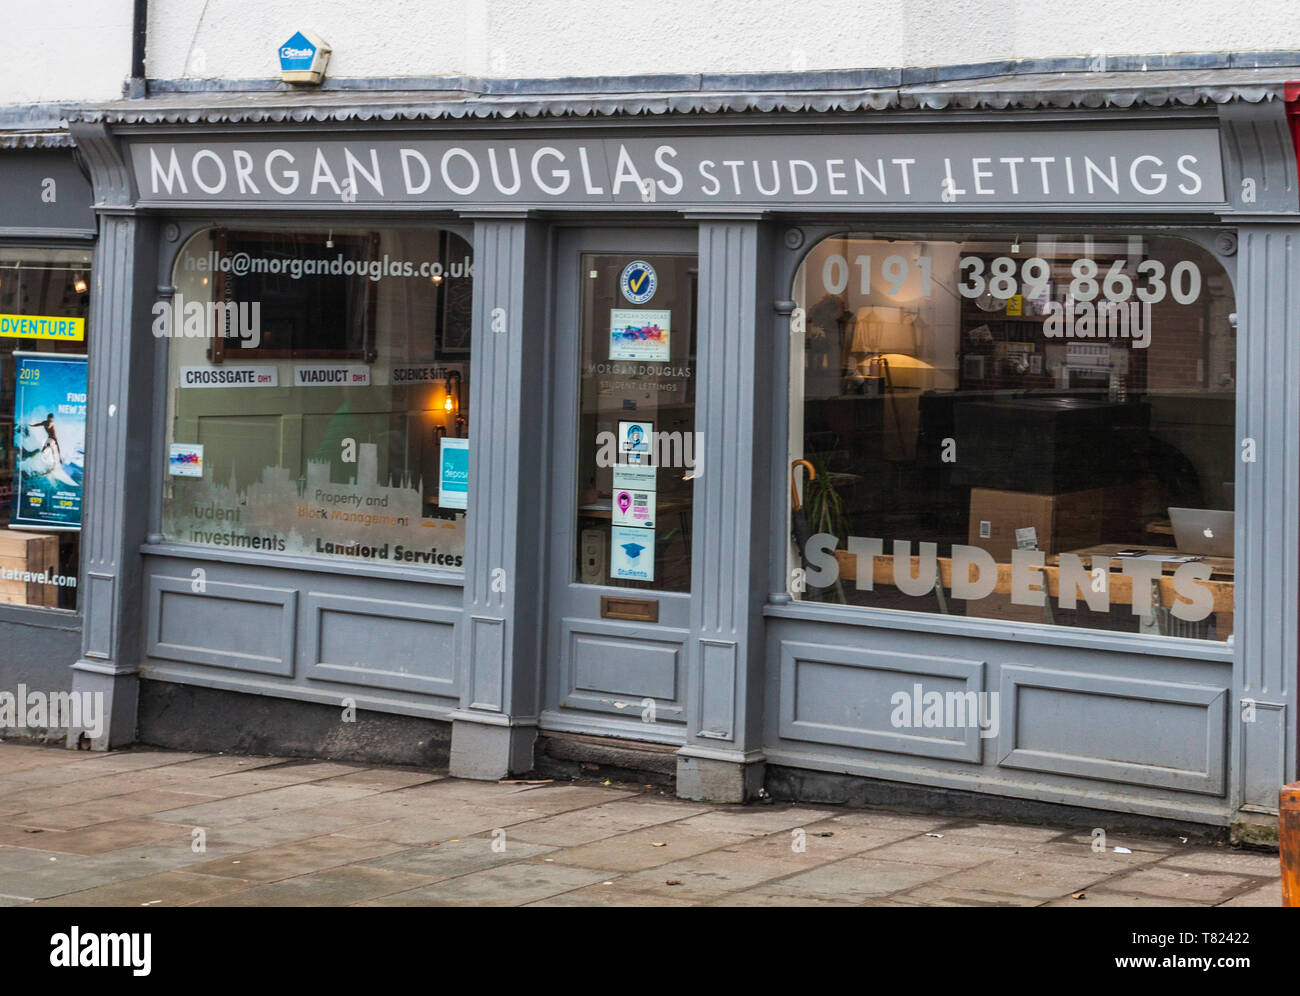 Morgan Douglas,Student Lettings offices in Durham,England,UK - Stock Image